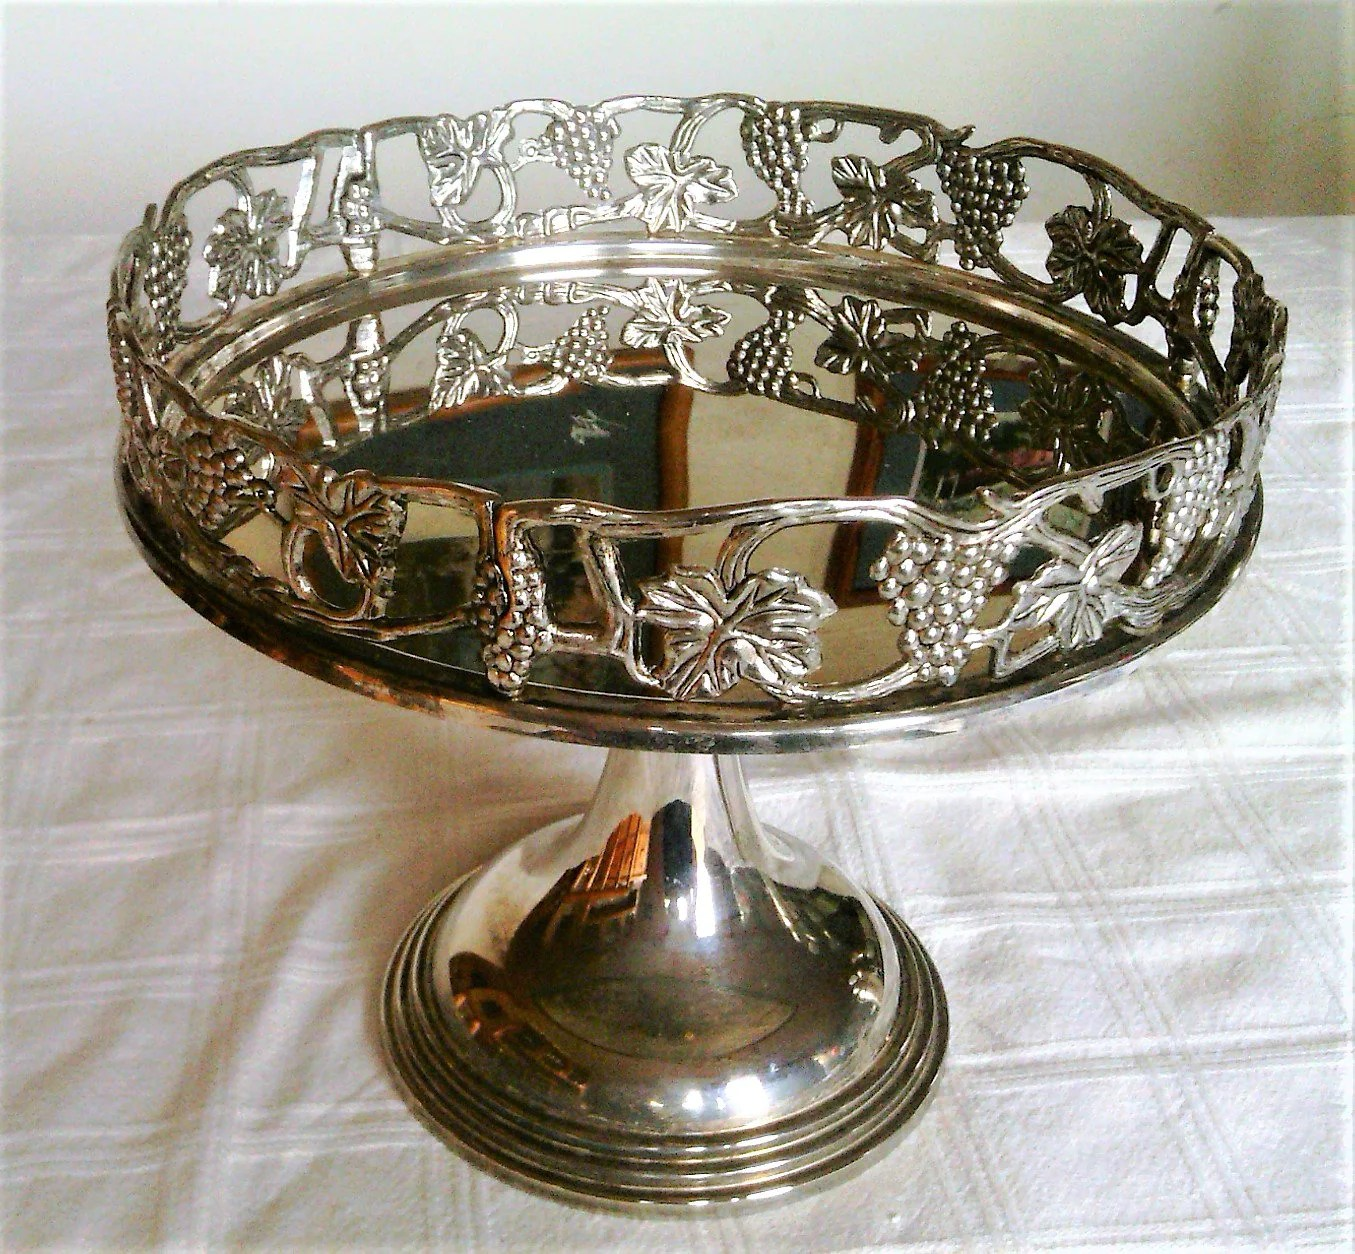 Vintage Silverplate Footed Or Pedestal Dessert Or Cake